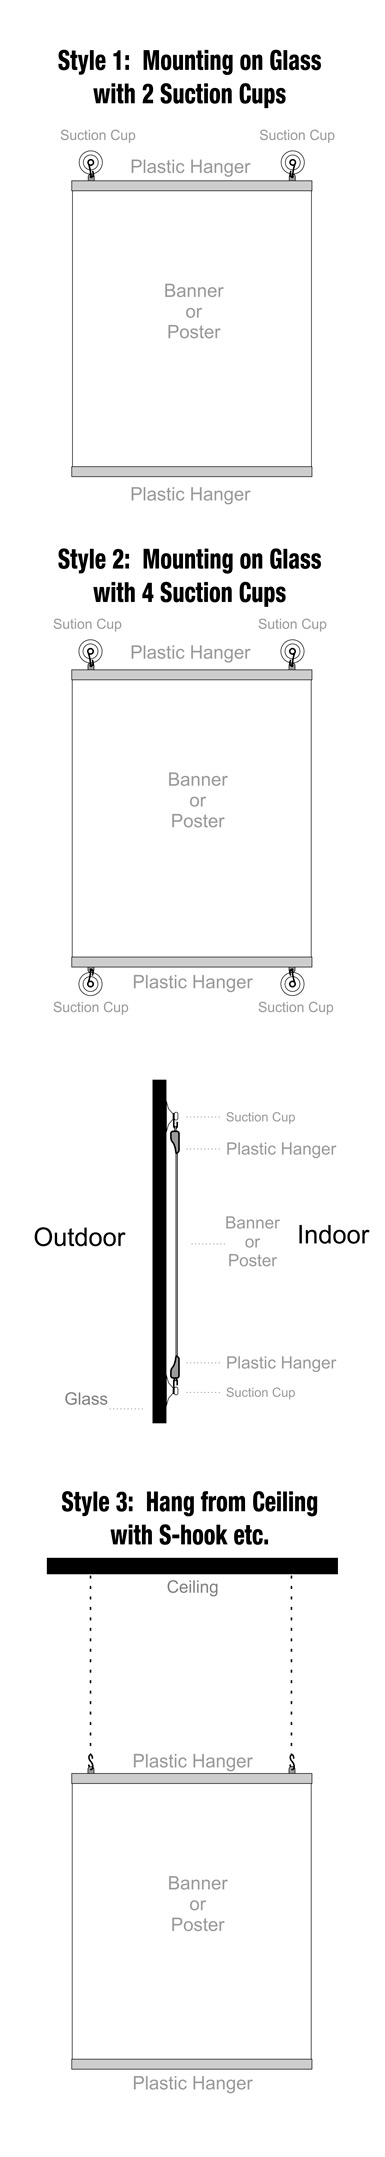 How to Hang Plastic Hanger